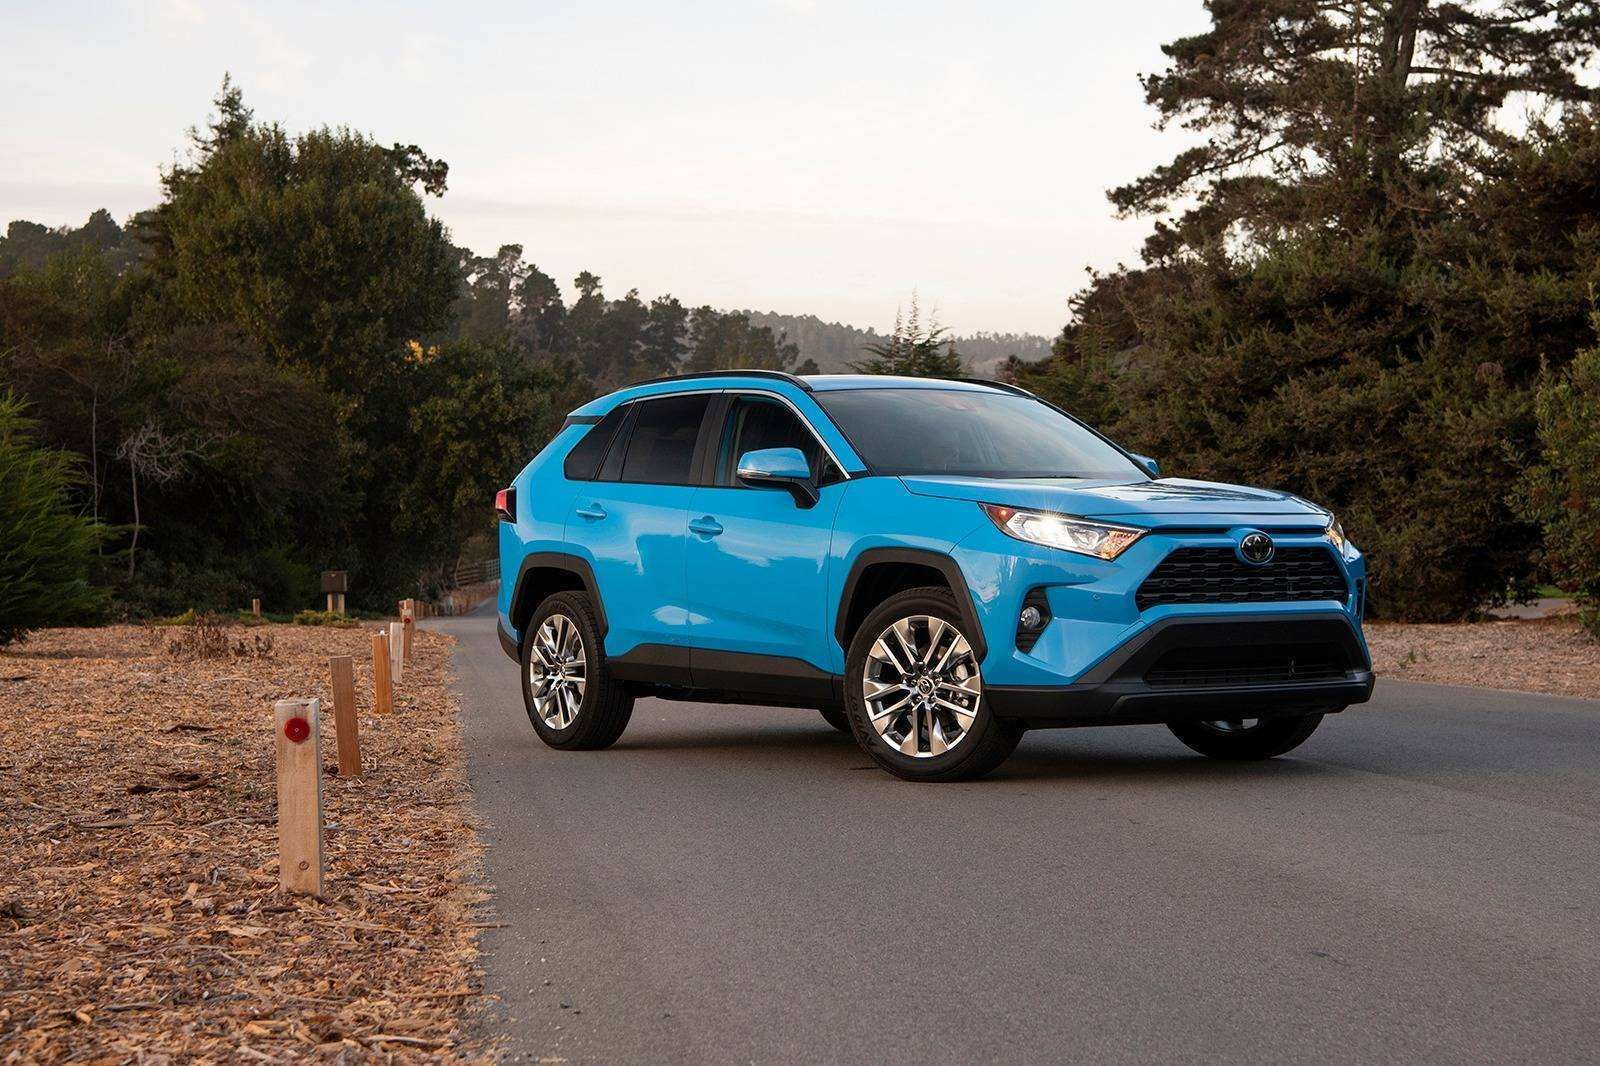 24 Best Review 2019 Toyota Rav4 Price Redesign with 2019 Toyota Rav4 Price